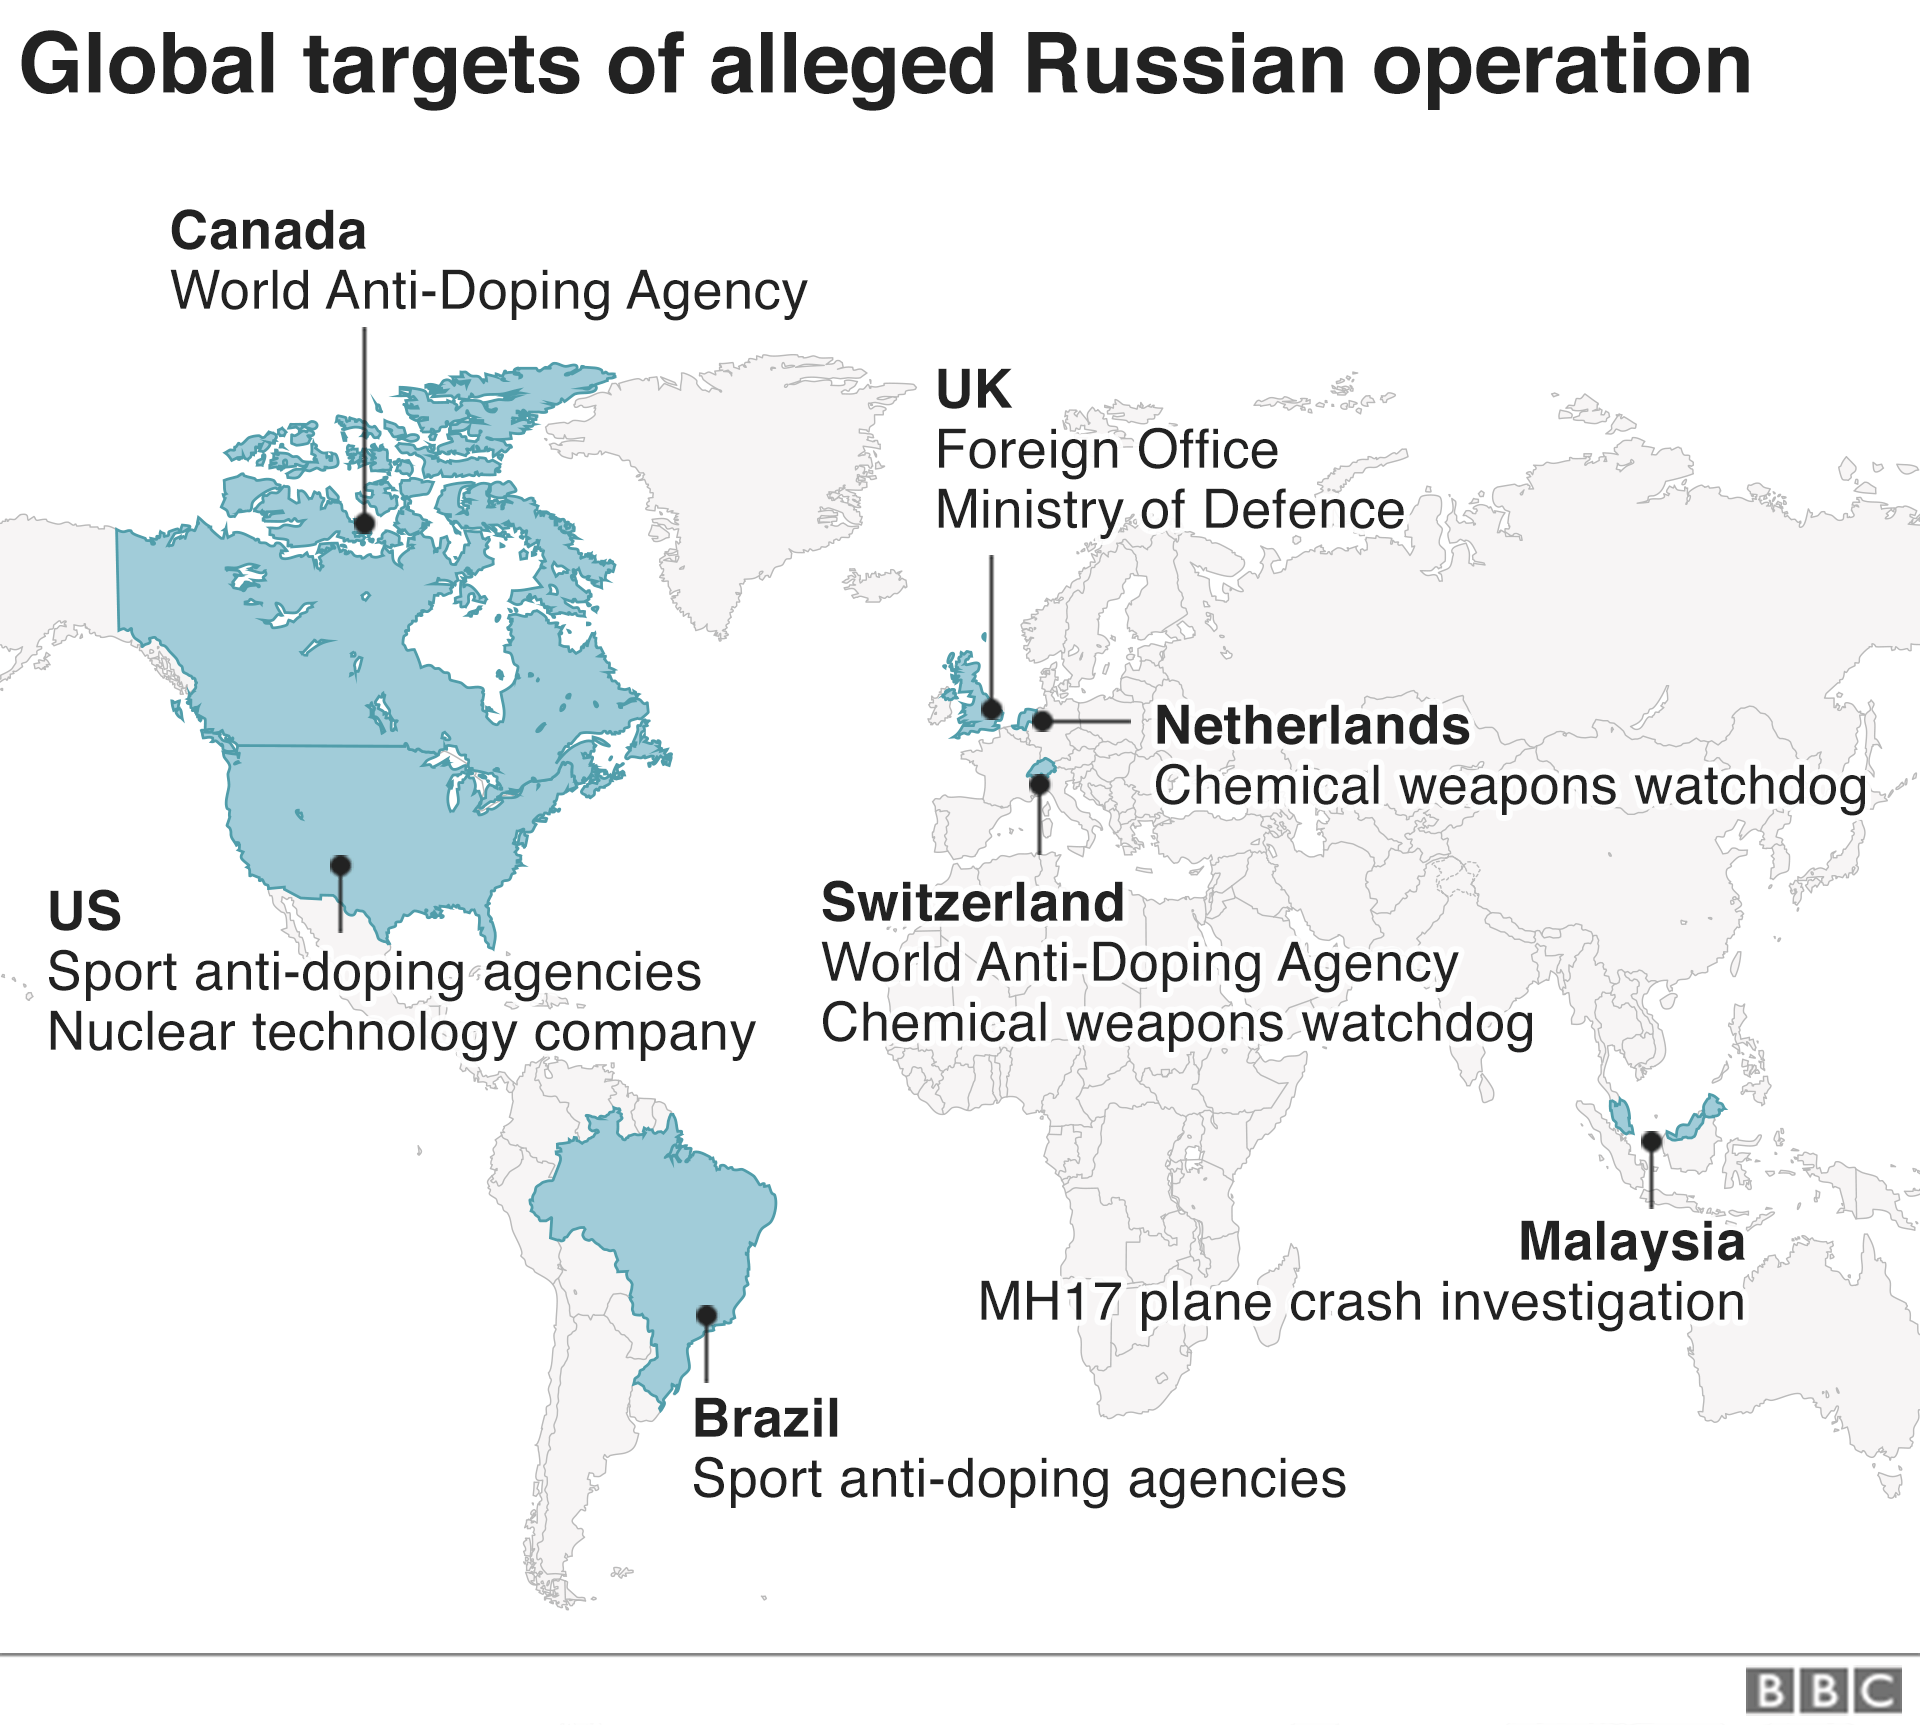 West accuses Russia of global cyber-plots